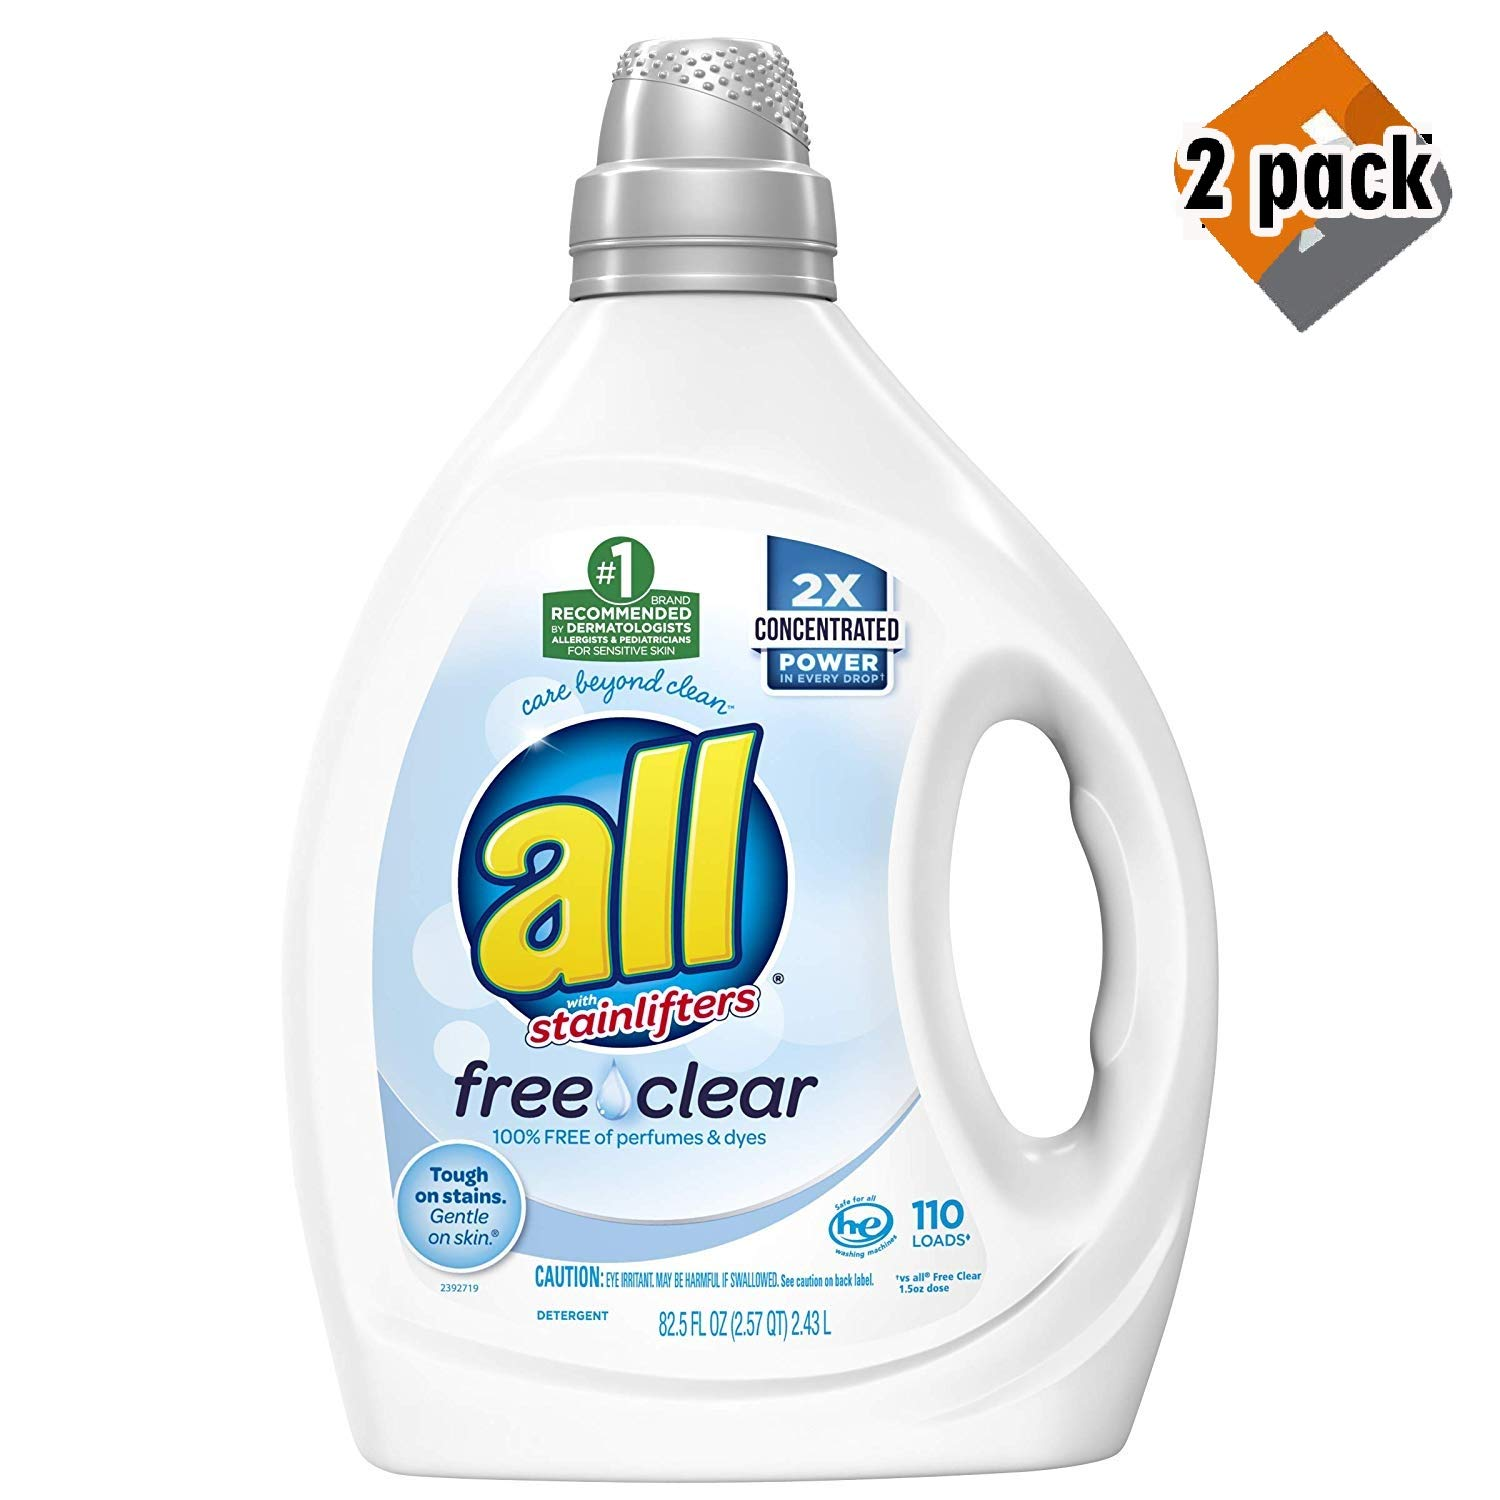 Liquid Laundry Detergent, Free Clear for Sensitive Skin, 2X Concentrated, 110 Loads (2 Pack)